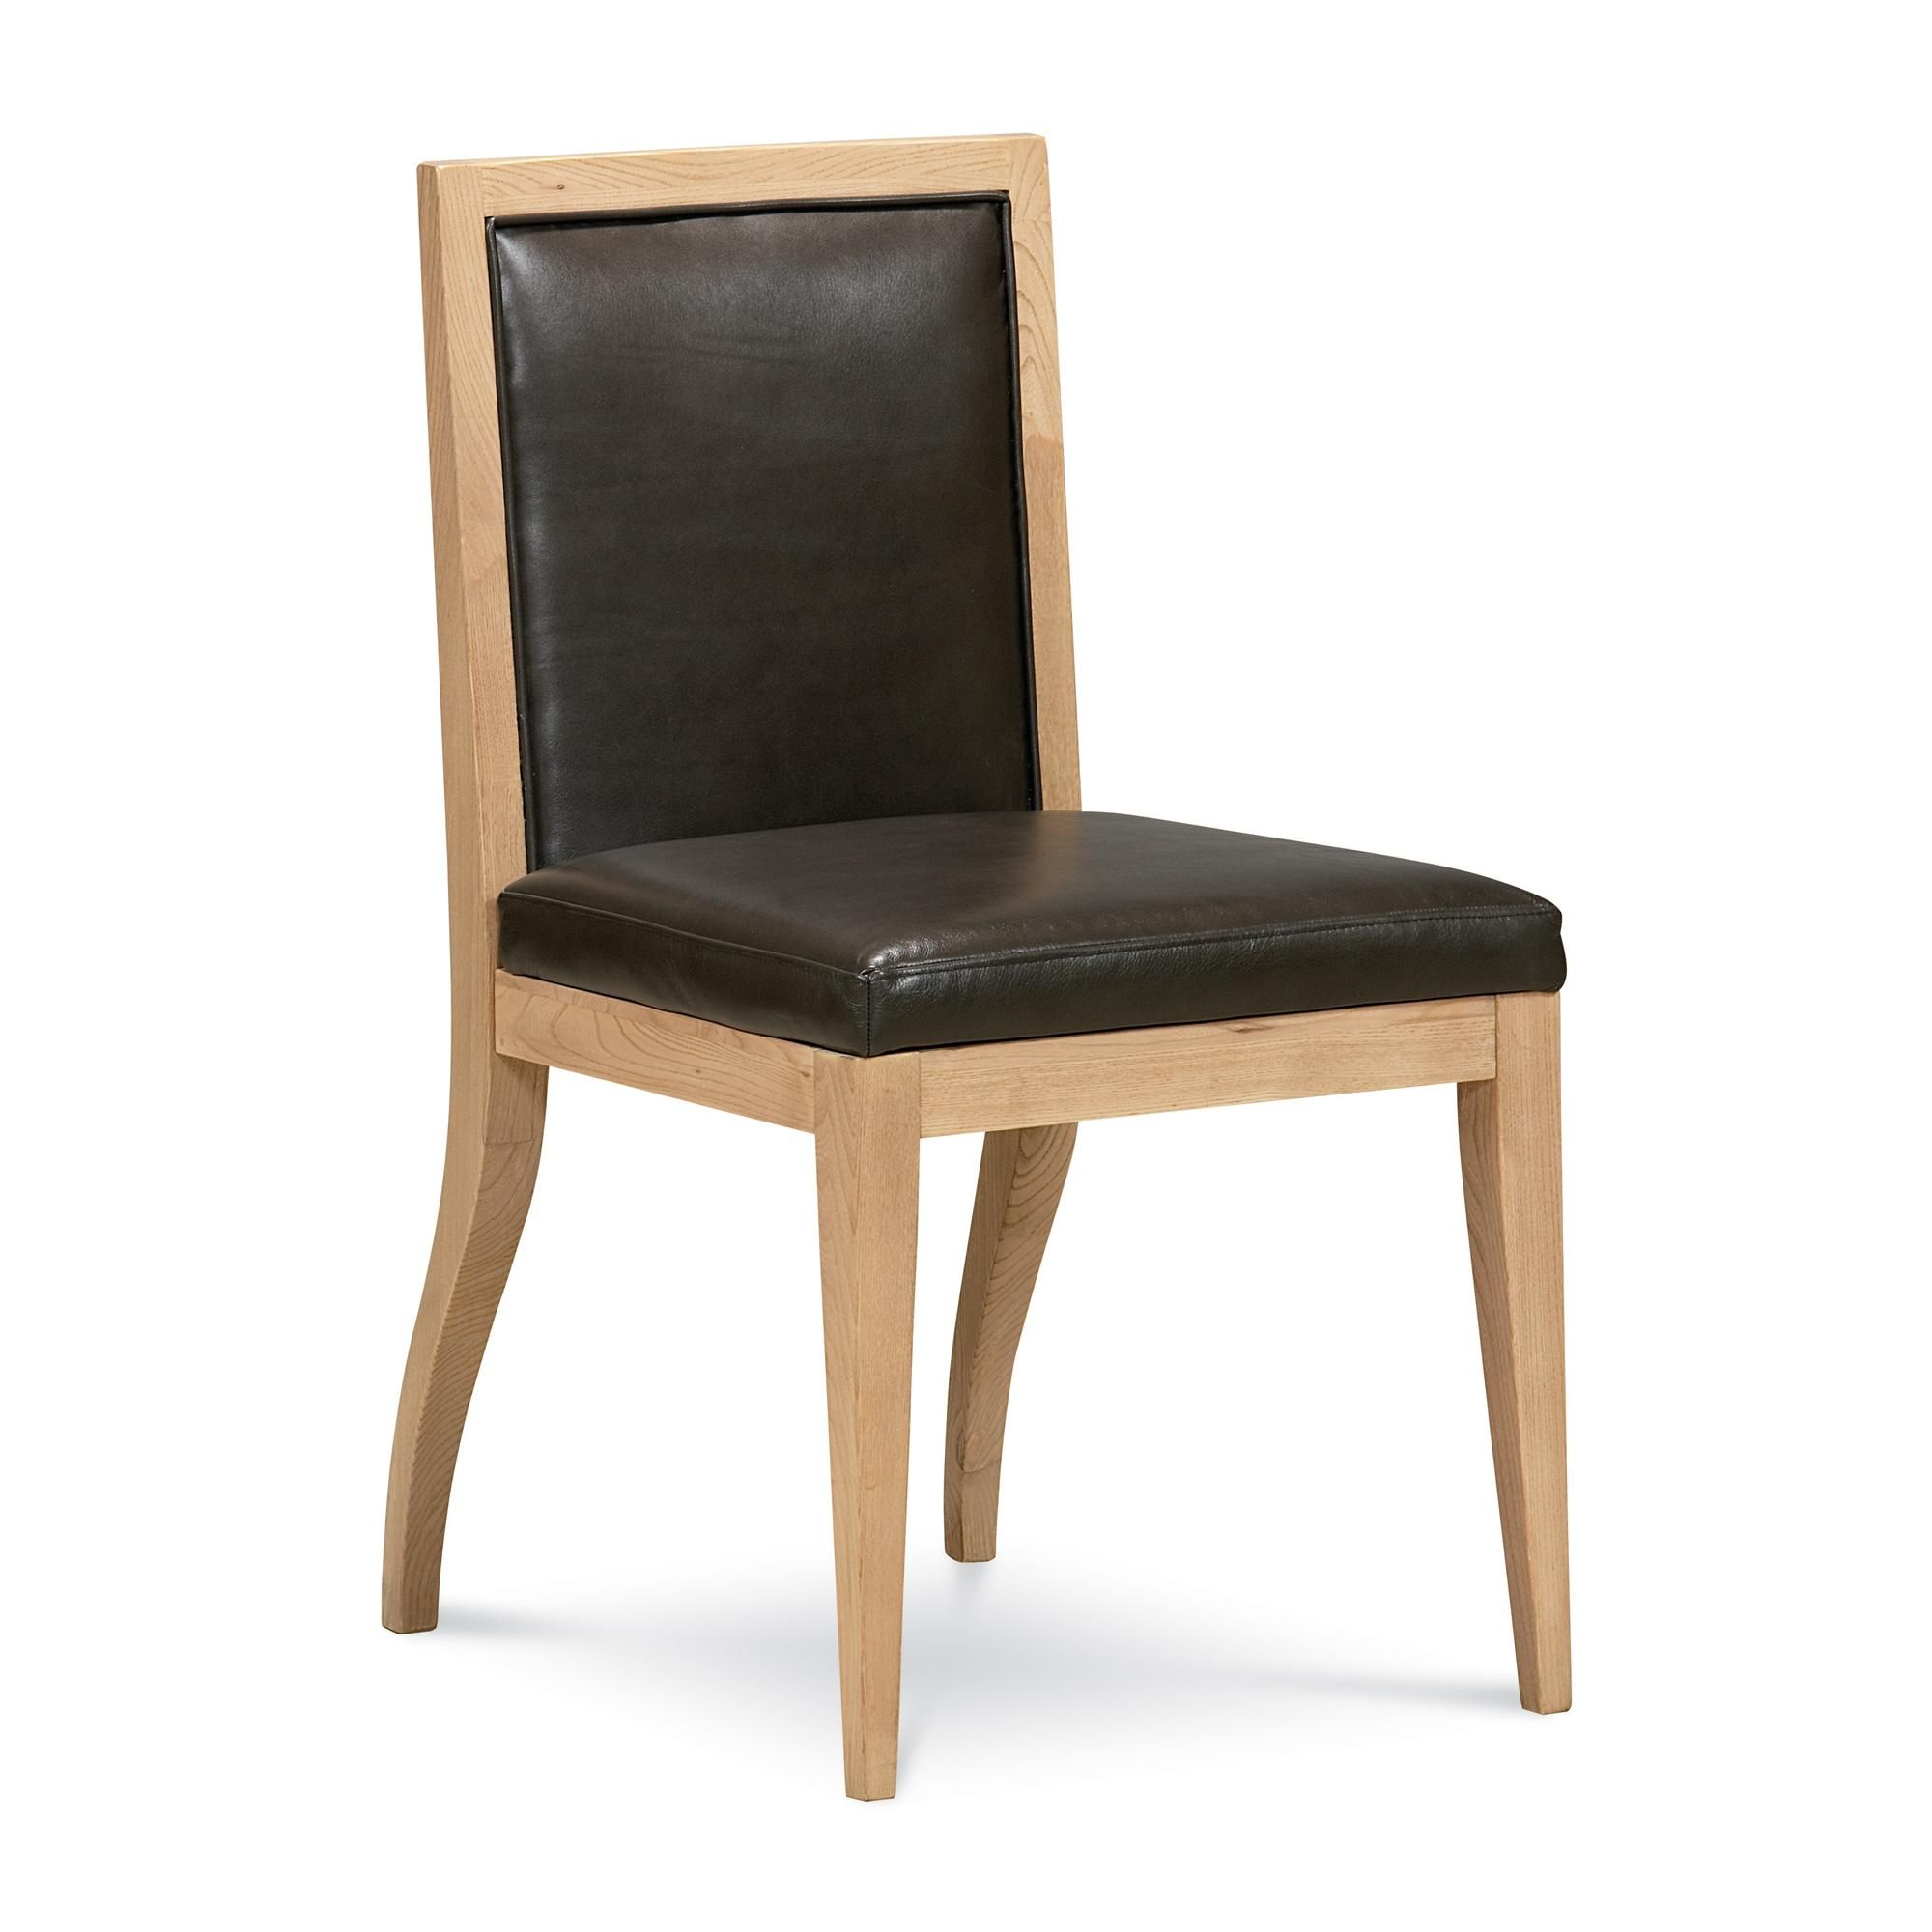 The winners chair by Caracole.